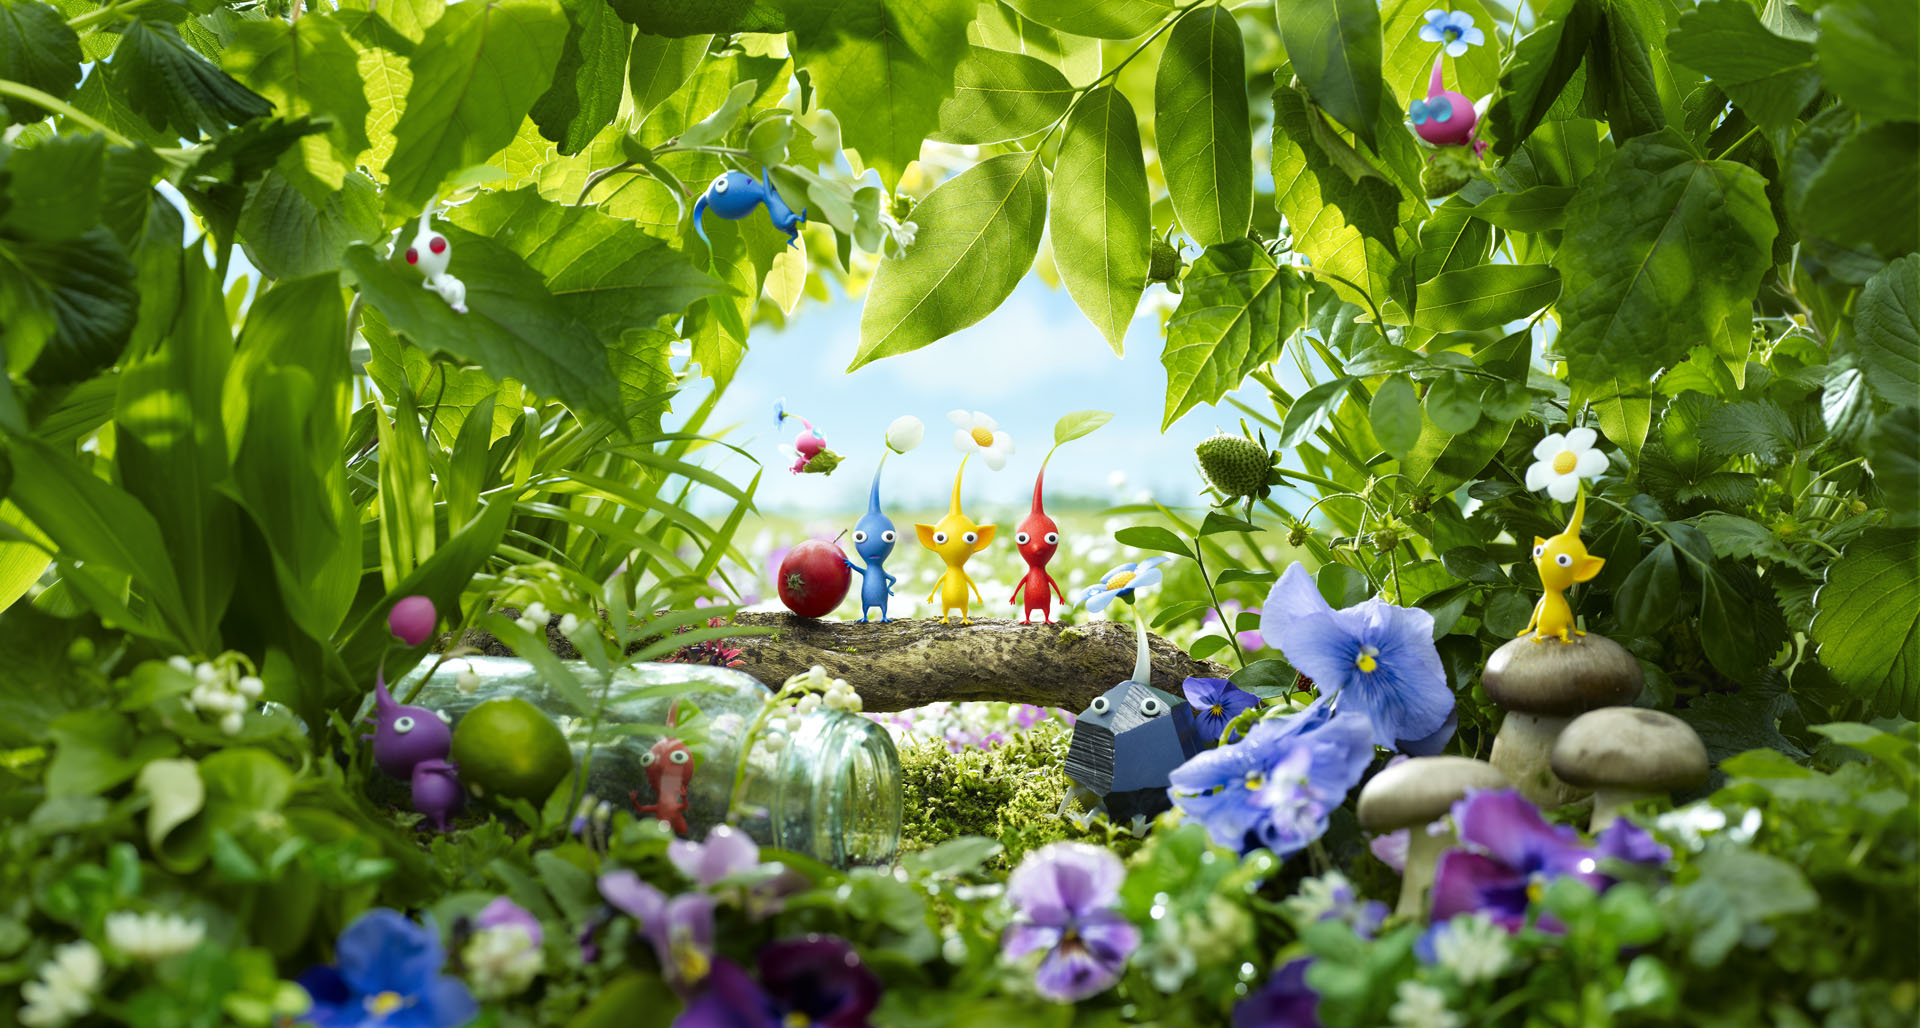 Pikmin 3 HD Wallpapers and Background Images   stmednet 1920x1028